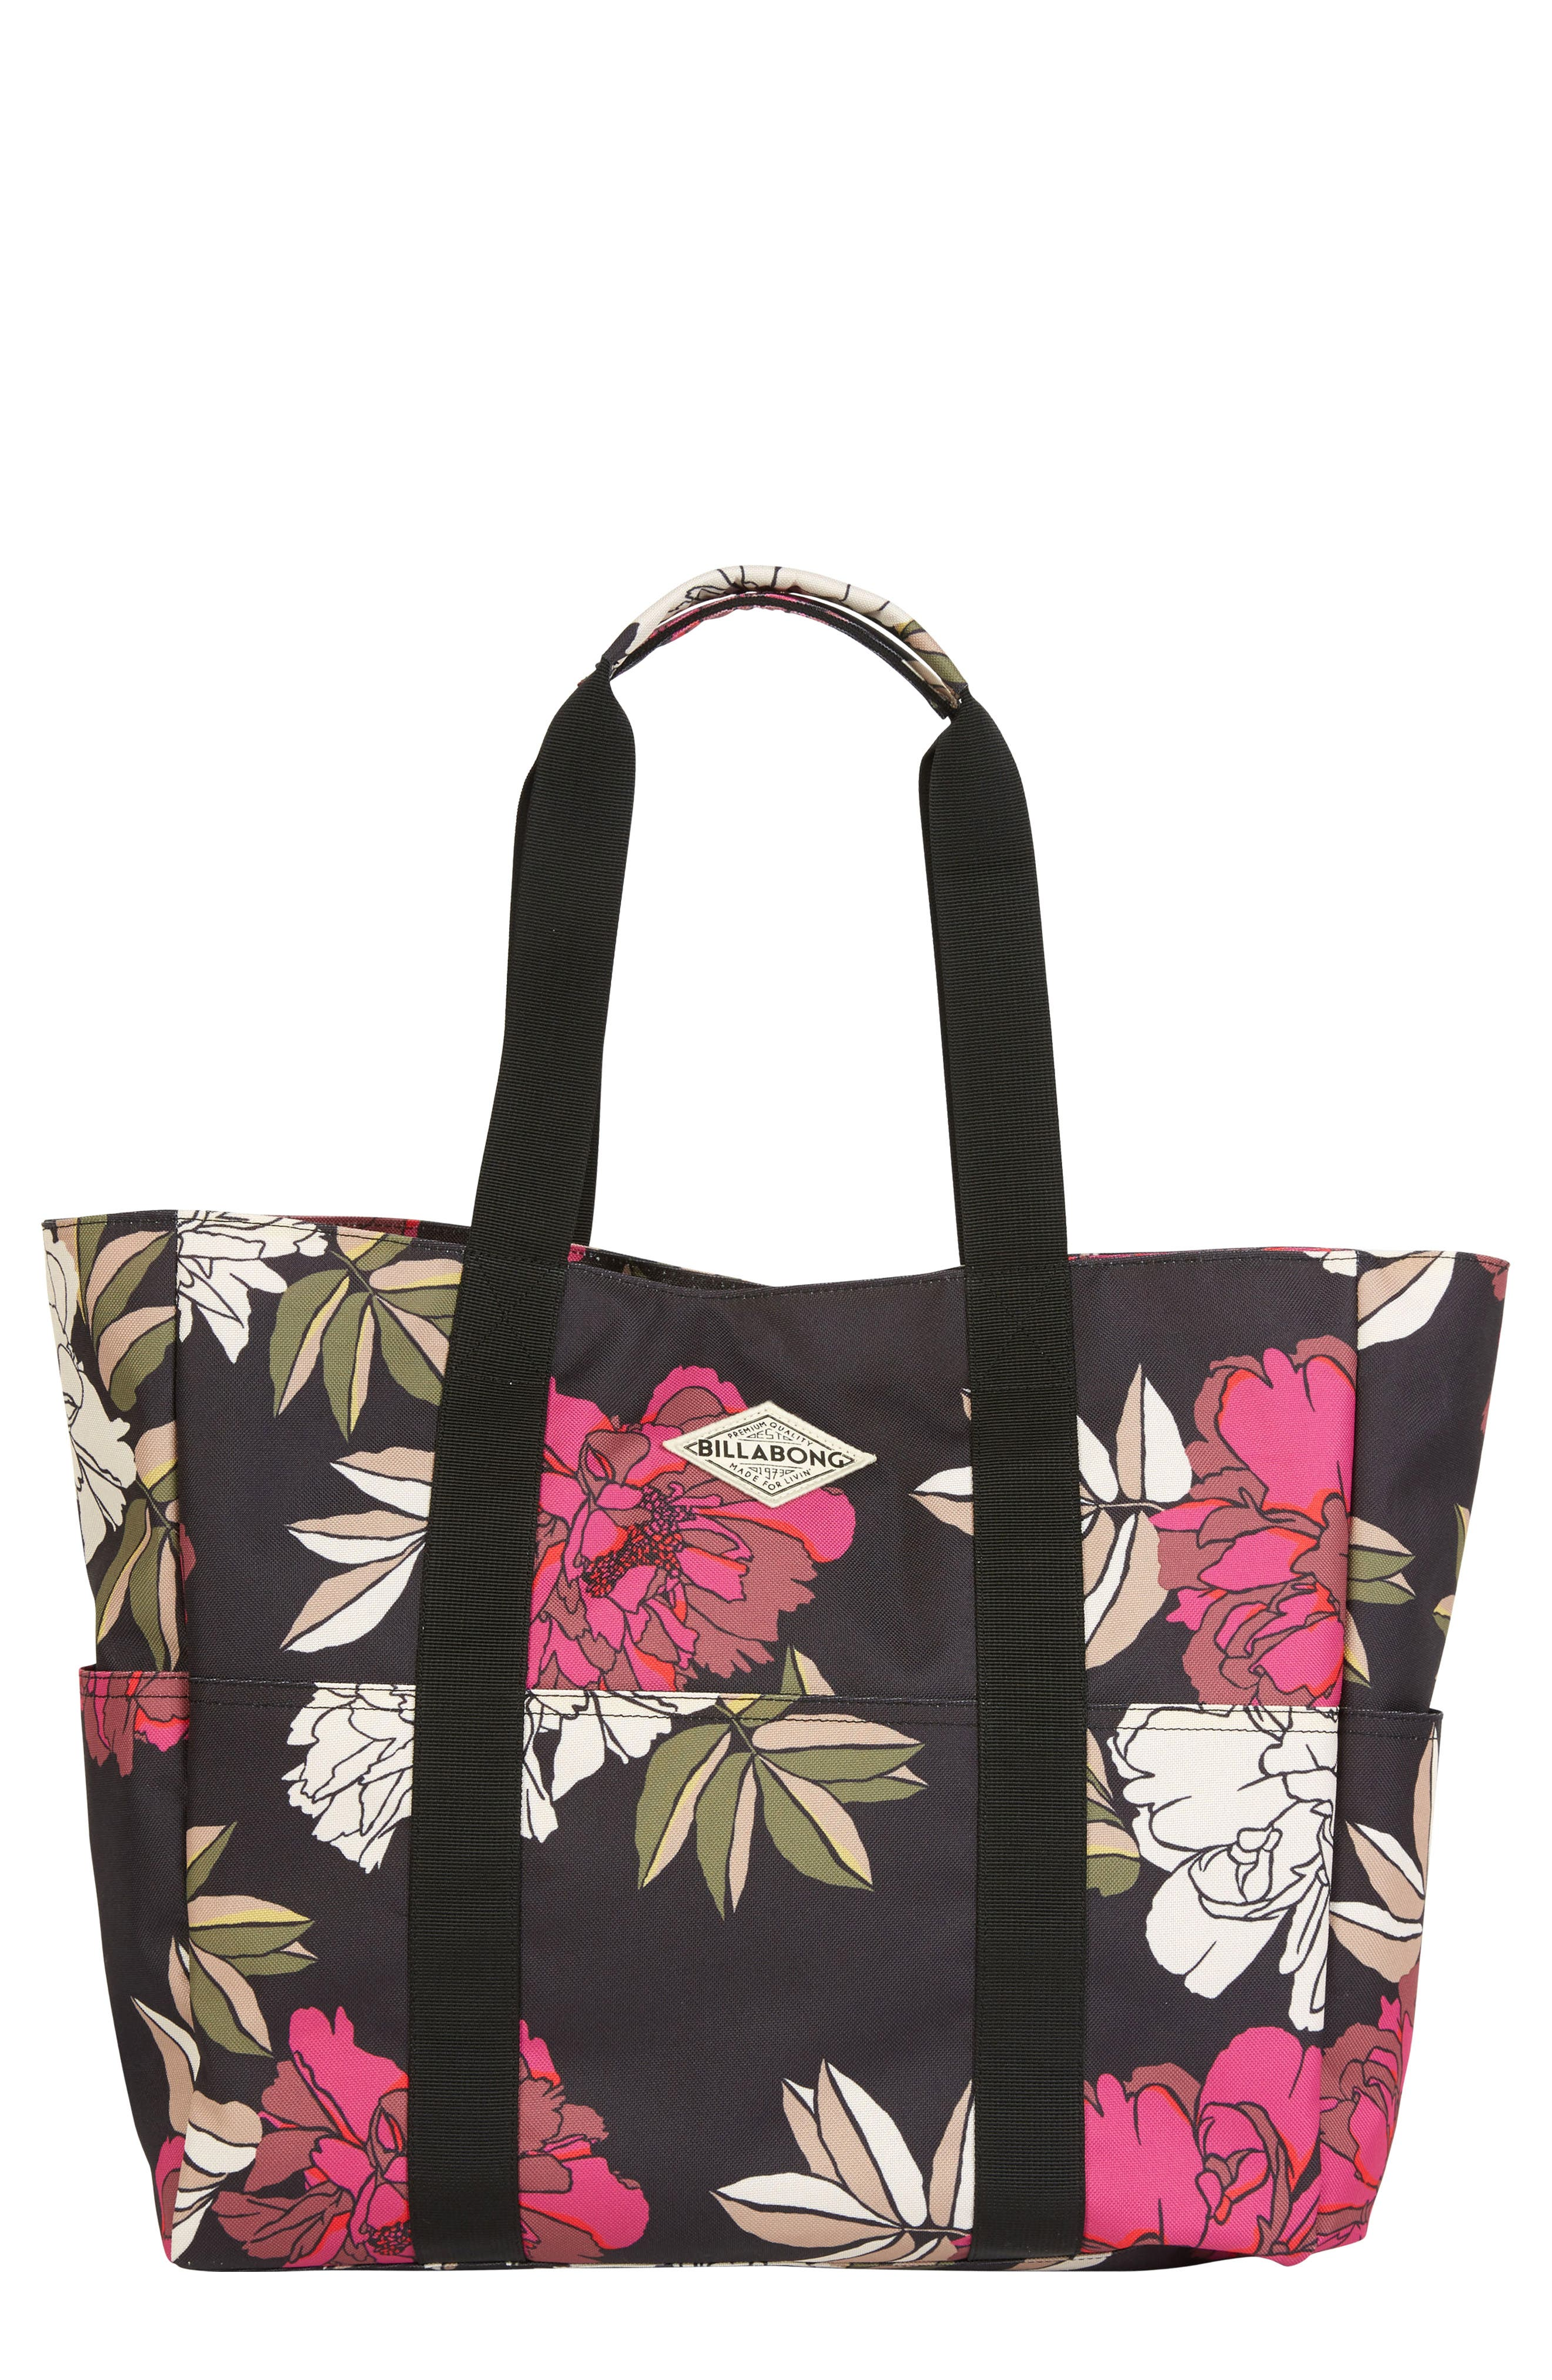 Billabong Totally Totes Tote